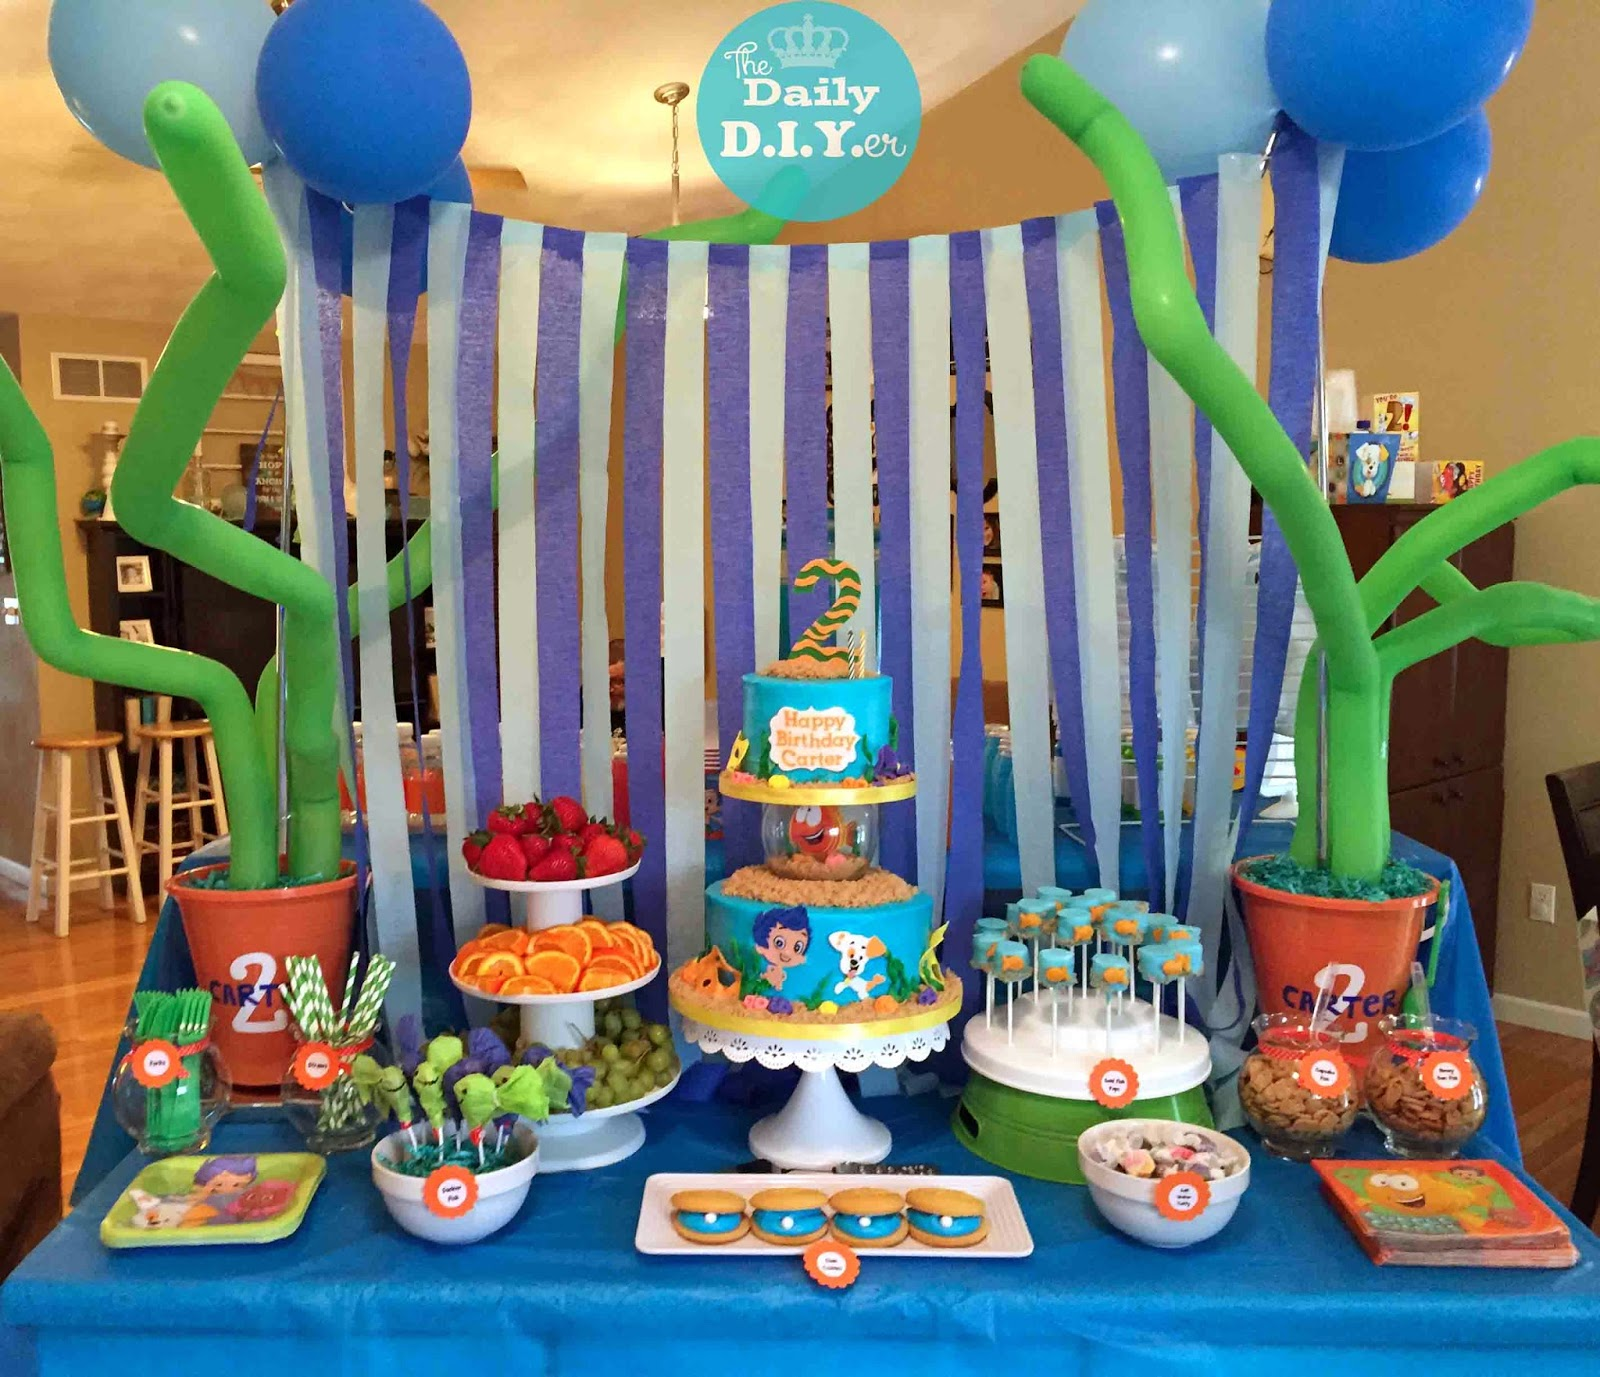 The daily diyer bubble guppies party food - Bubble guppie birthday ideas ...